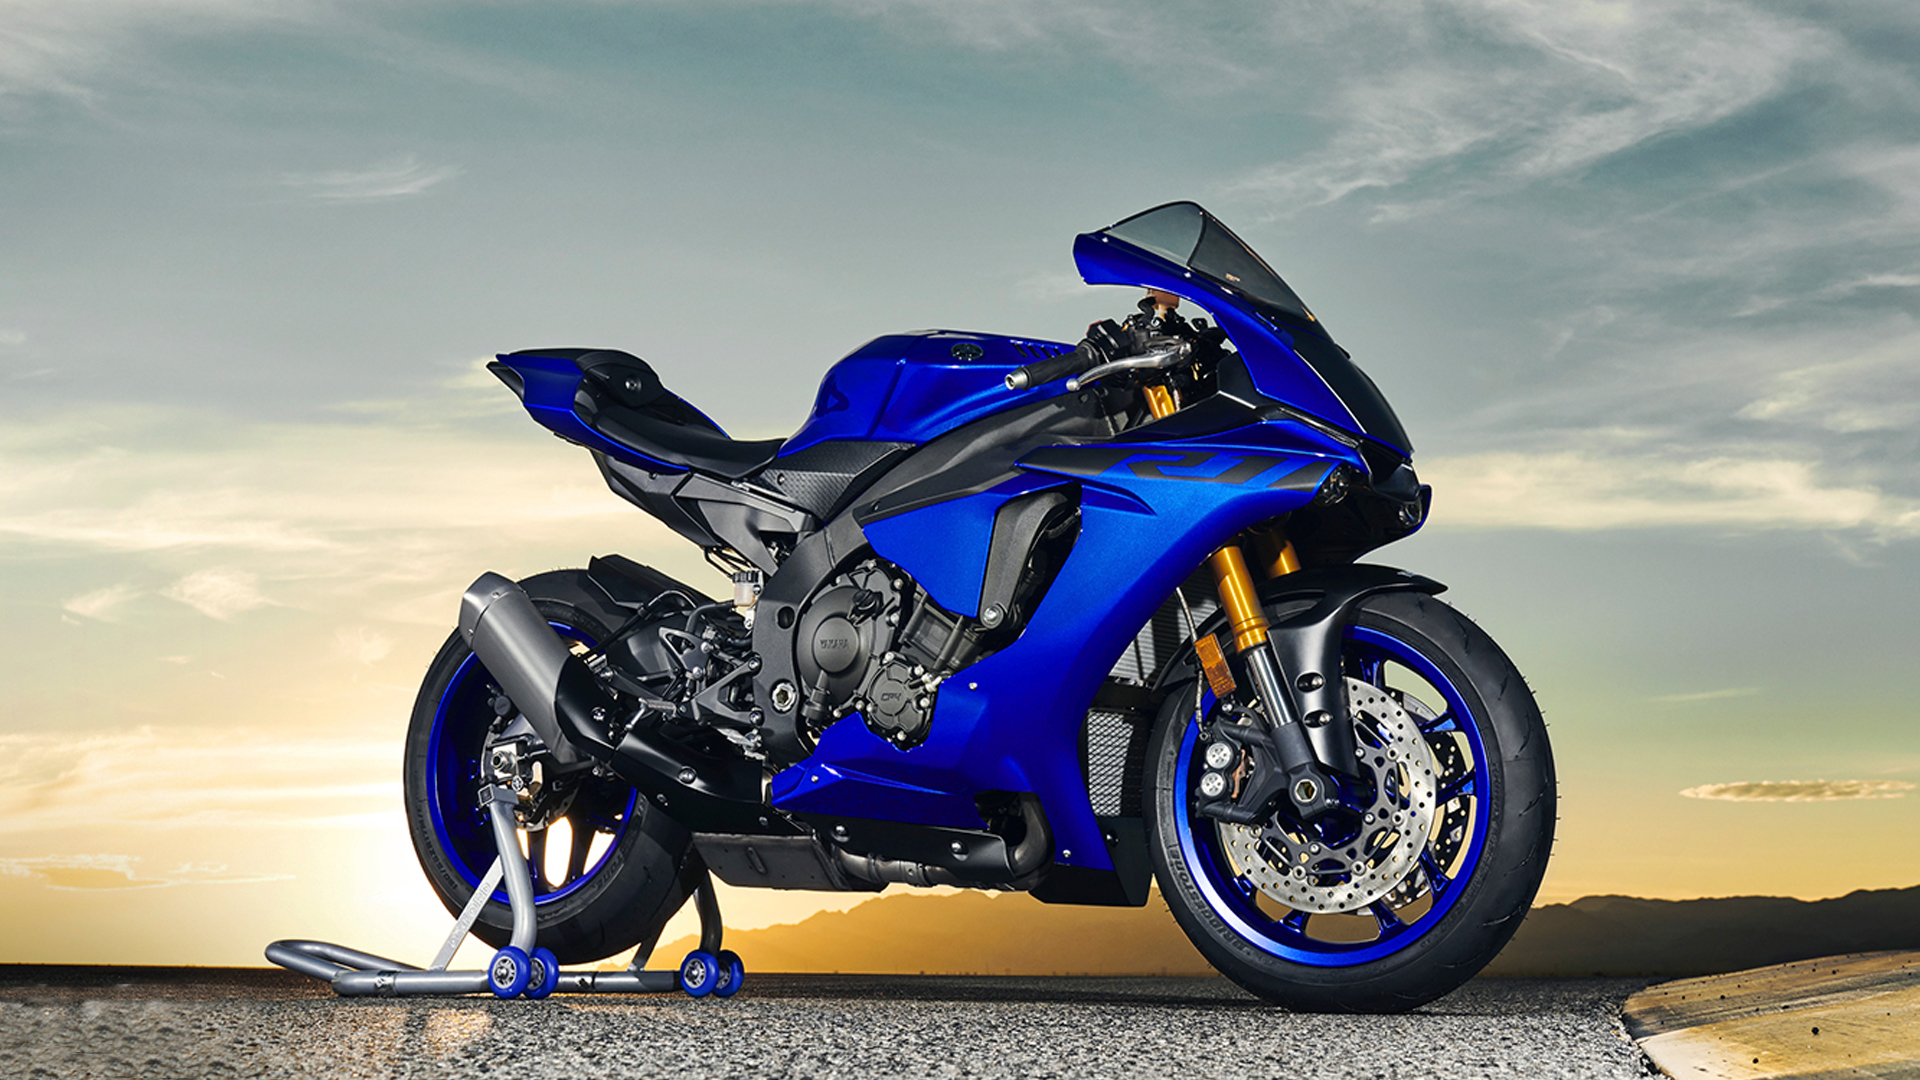 Yamaha YZF-R1 2018 - Price, Mileage, Reviews ...